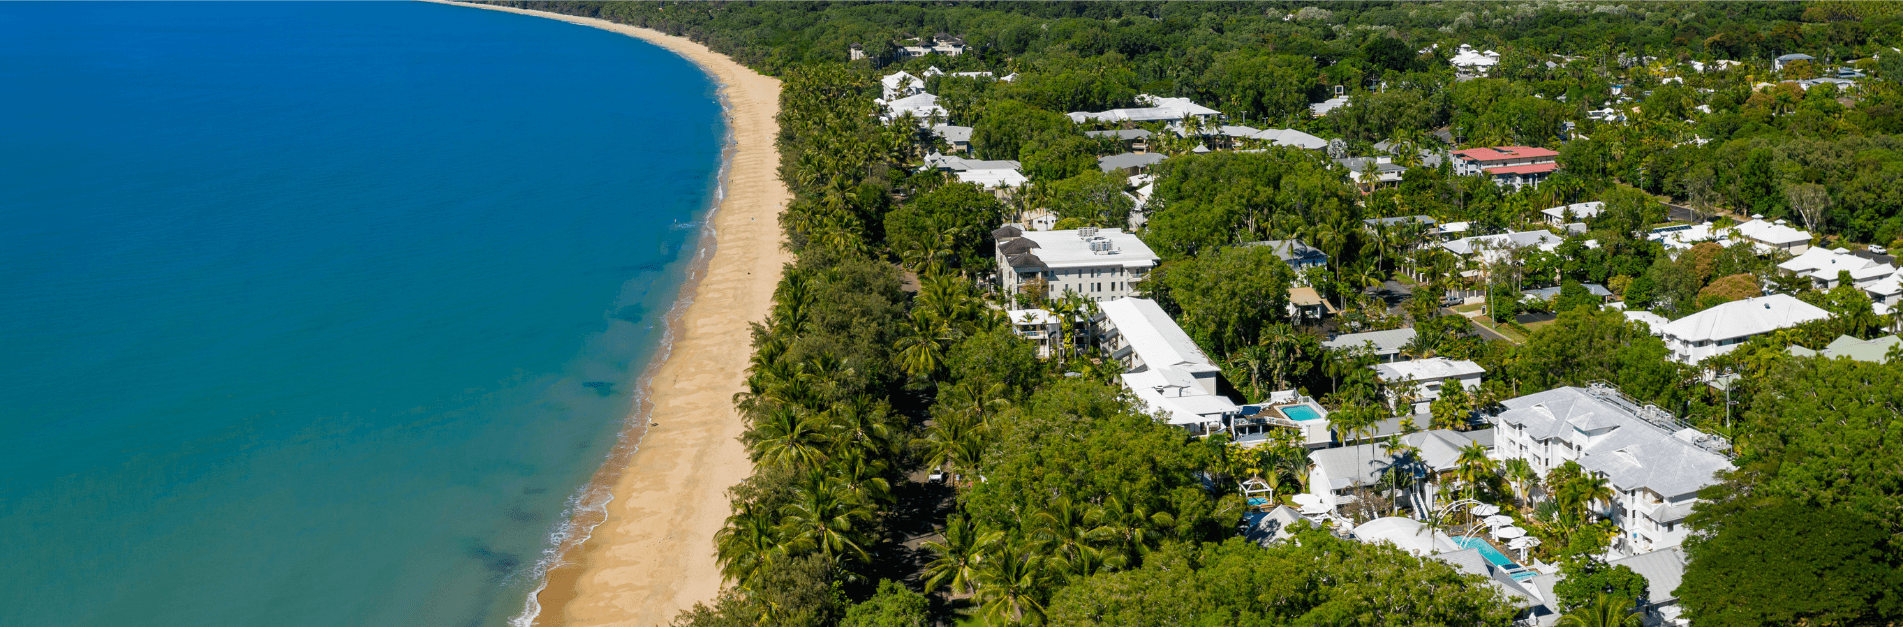 the-reef-house-palm-cove-header-image72